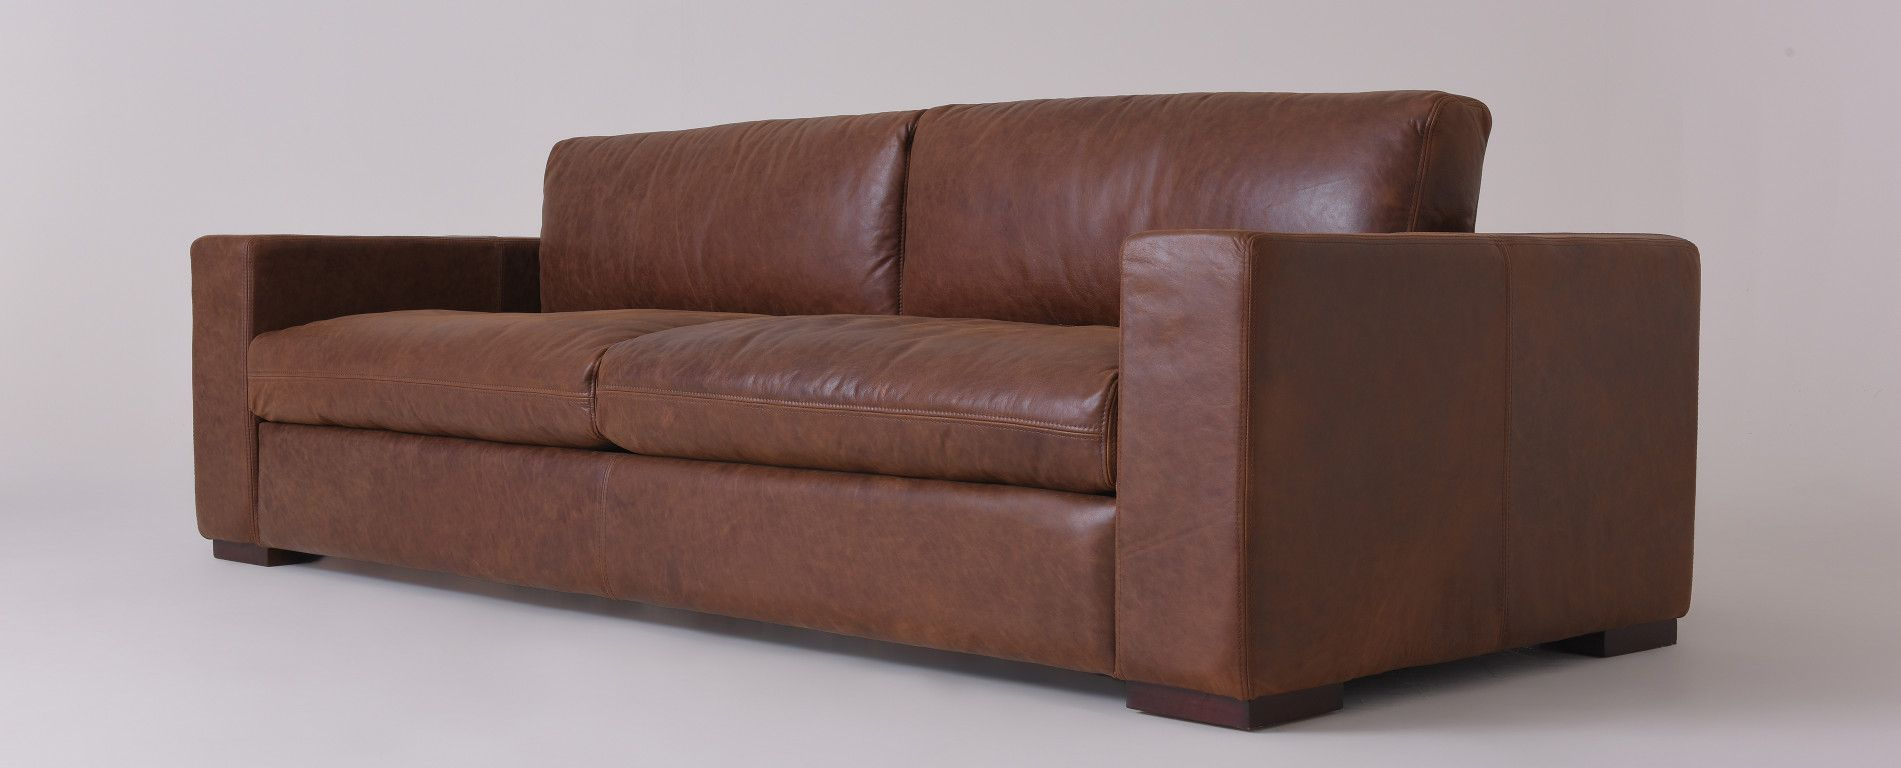 Aberdeen Leather Sofa